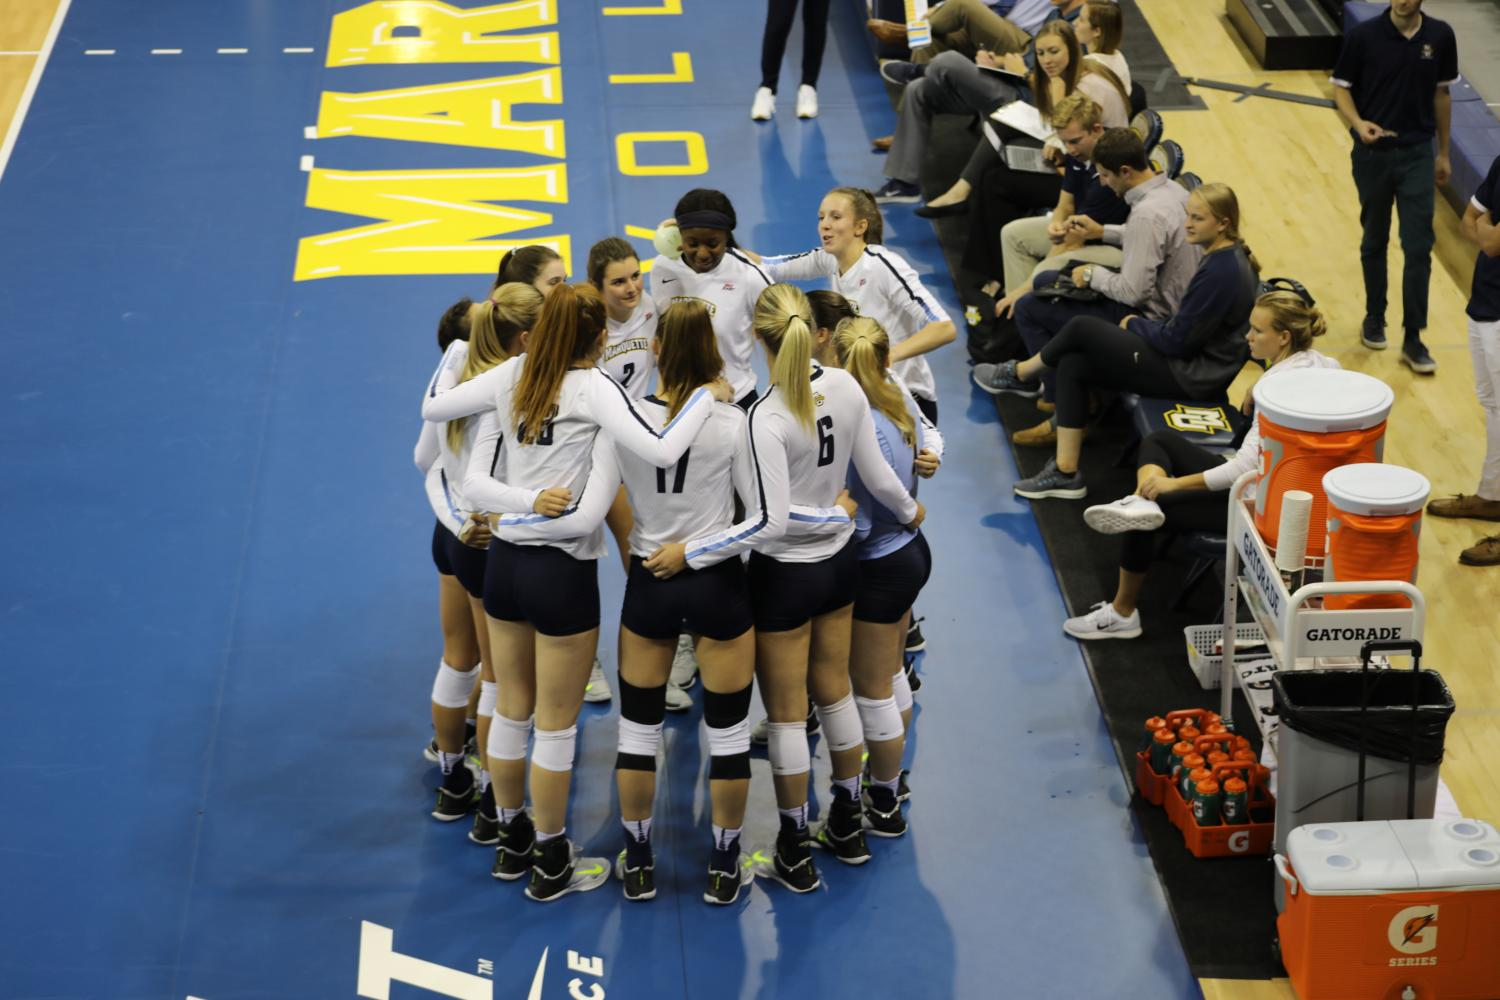 PREVIEW: Marquette, others look to unseat Creighton in BIG EAST volleyball tournament